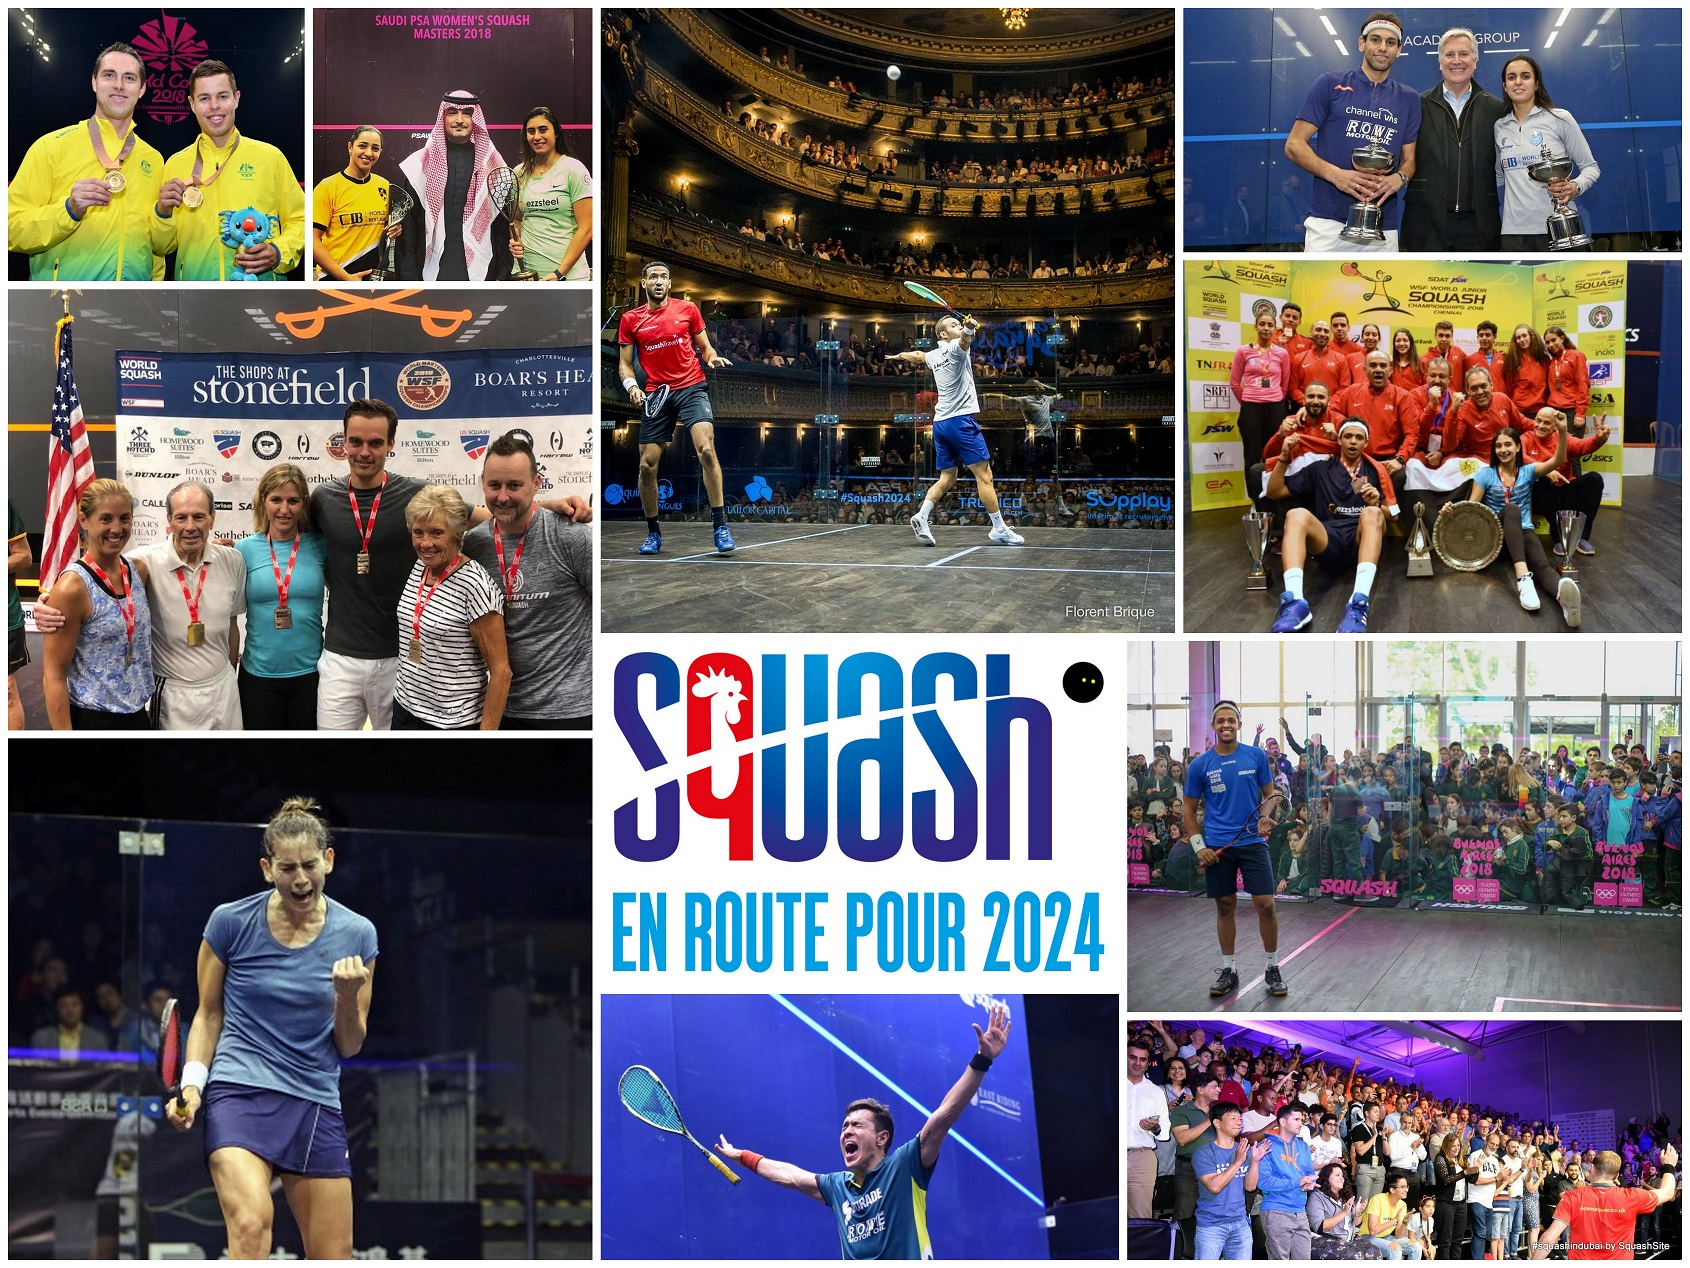 ROAD TO 2024: 2018, A YEAR OF SQUASH